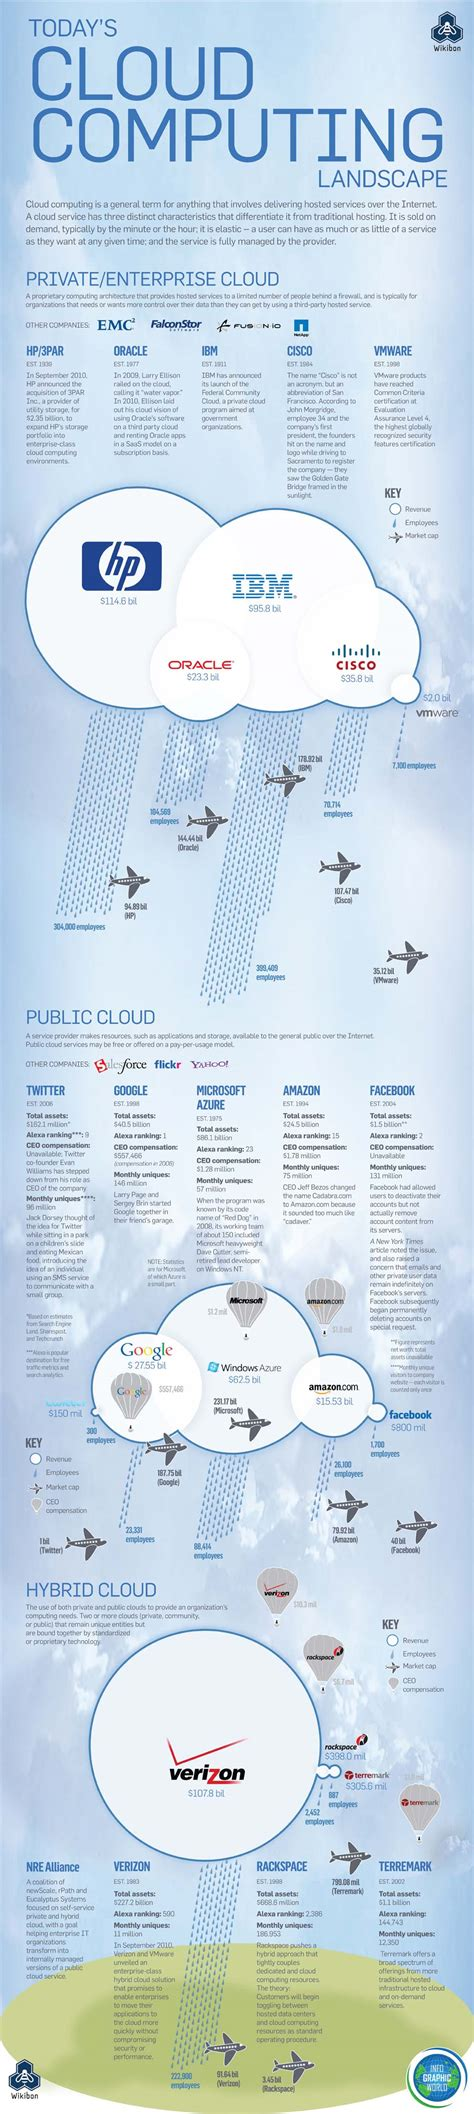 cloud computing infographic cloud computing landscape infographic quicklycode